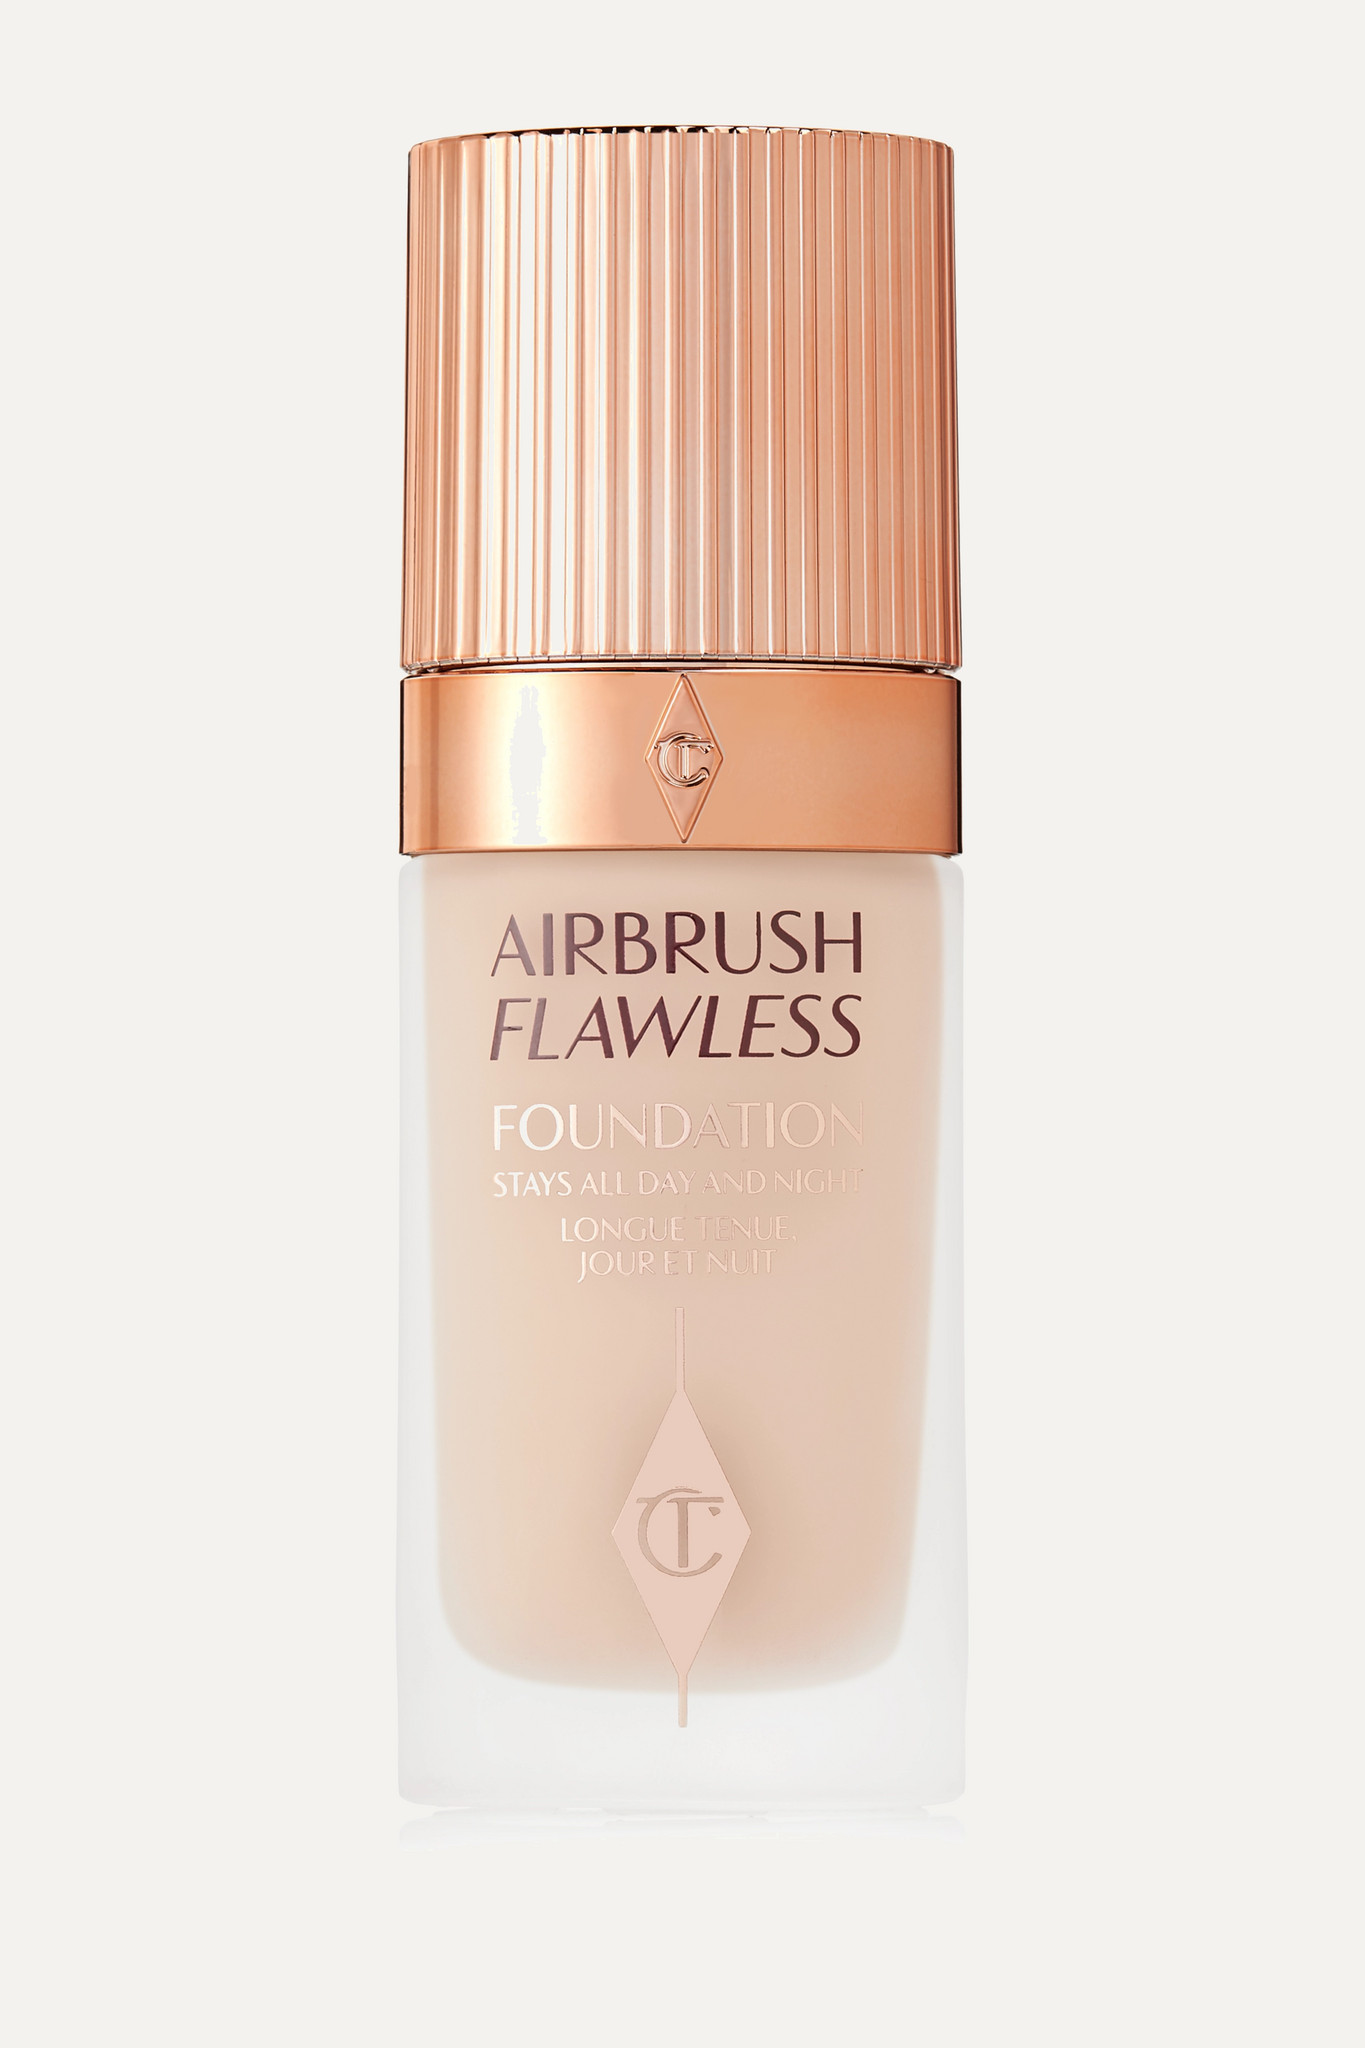 CHARLOTTE TILBURY - Airbrush Flawless Foundation - 3 Warm/chaud, 30ml - Neutrals - one size